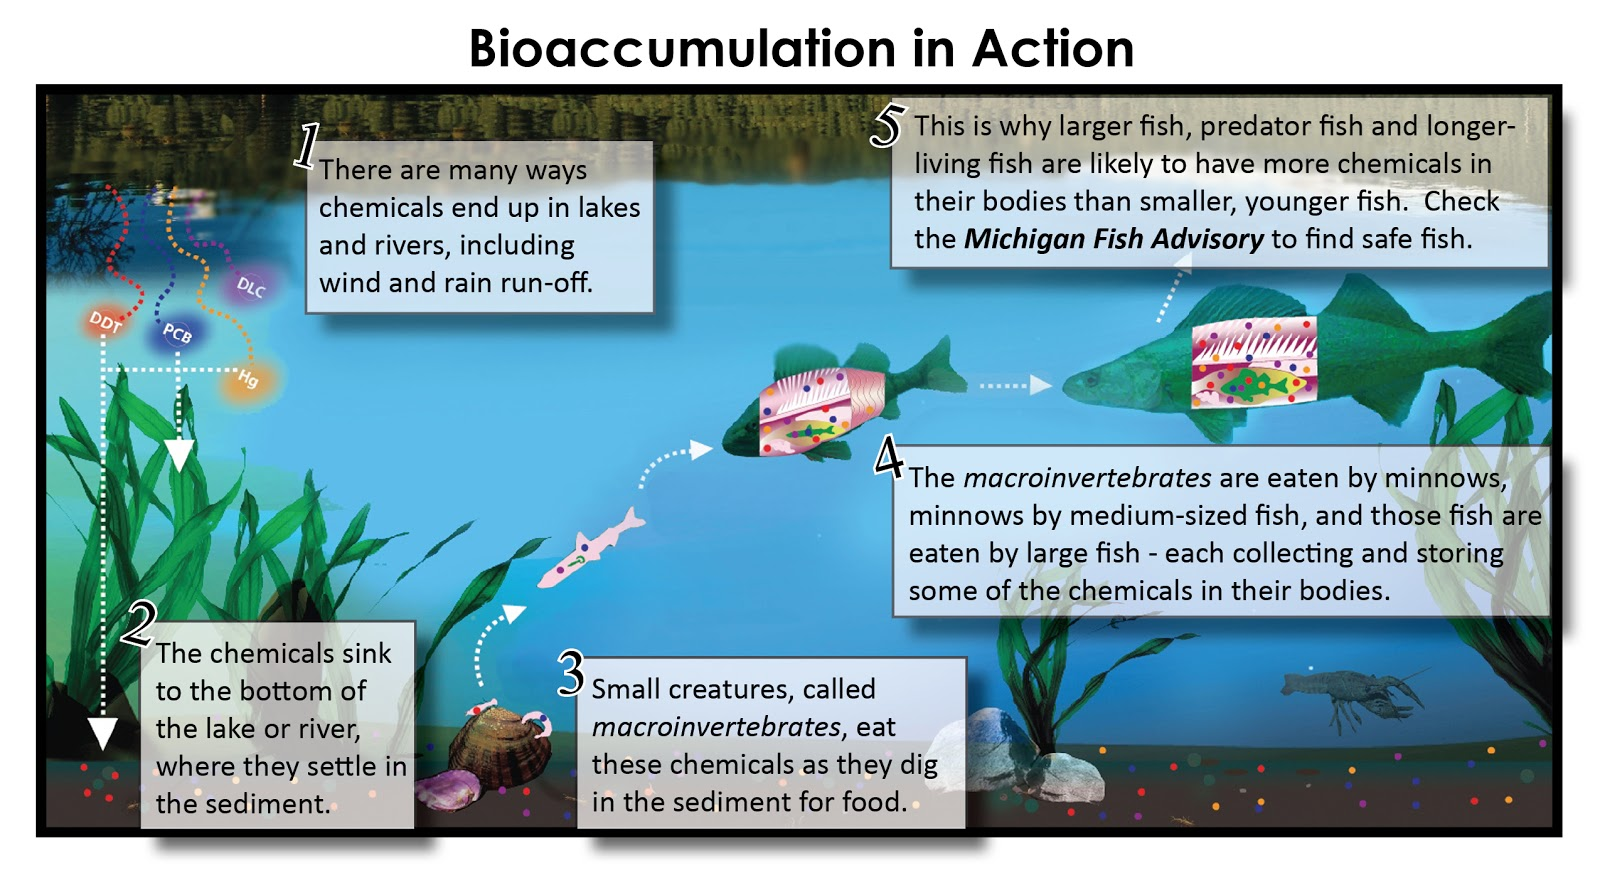 as the fish are eaten by organisms in higher trophic levels this is biomagnification